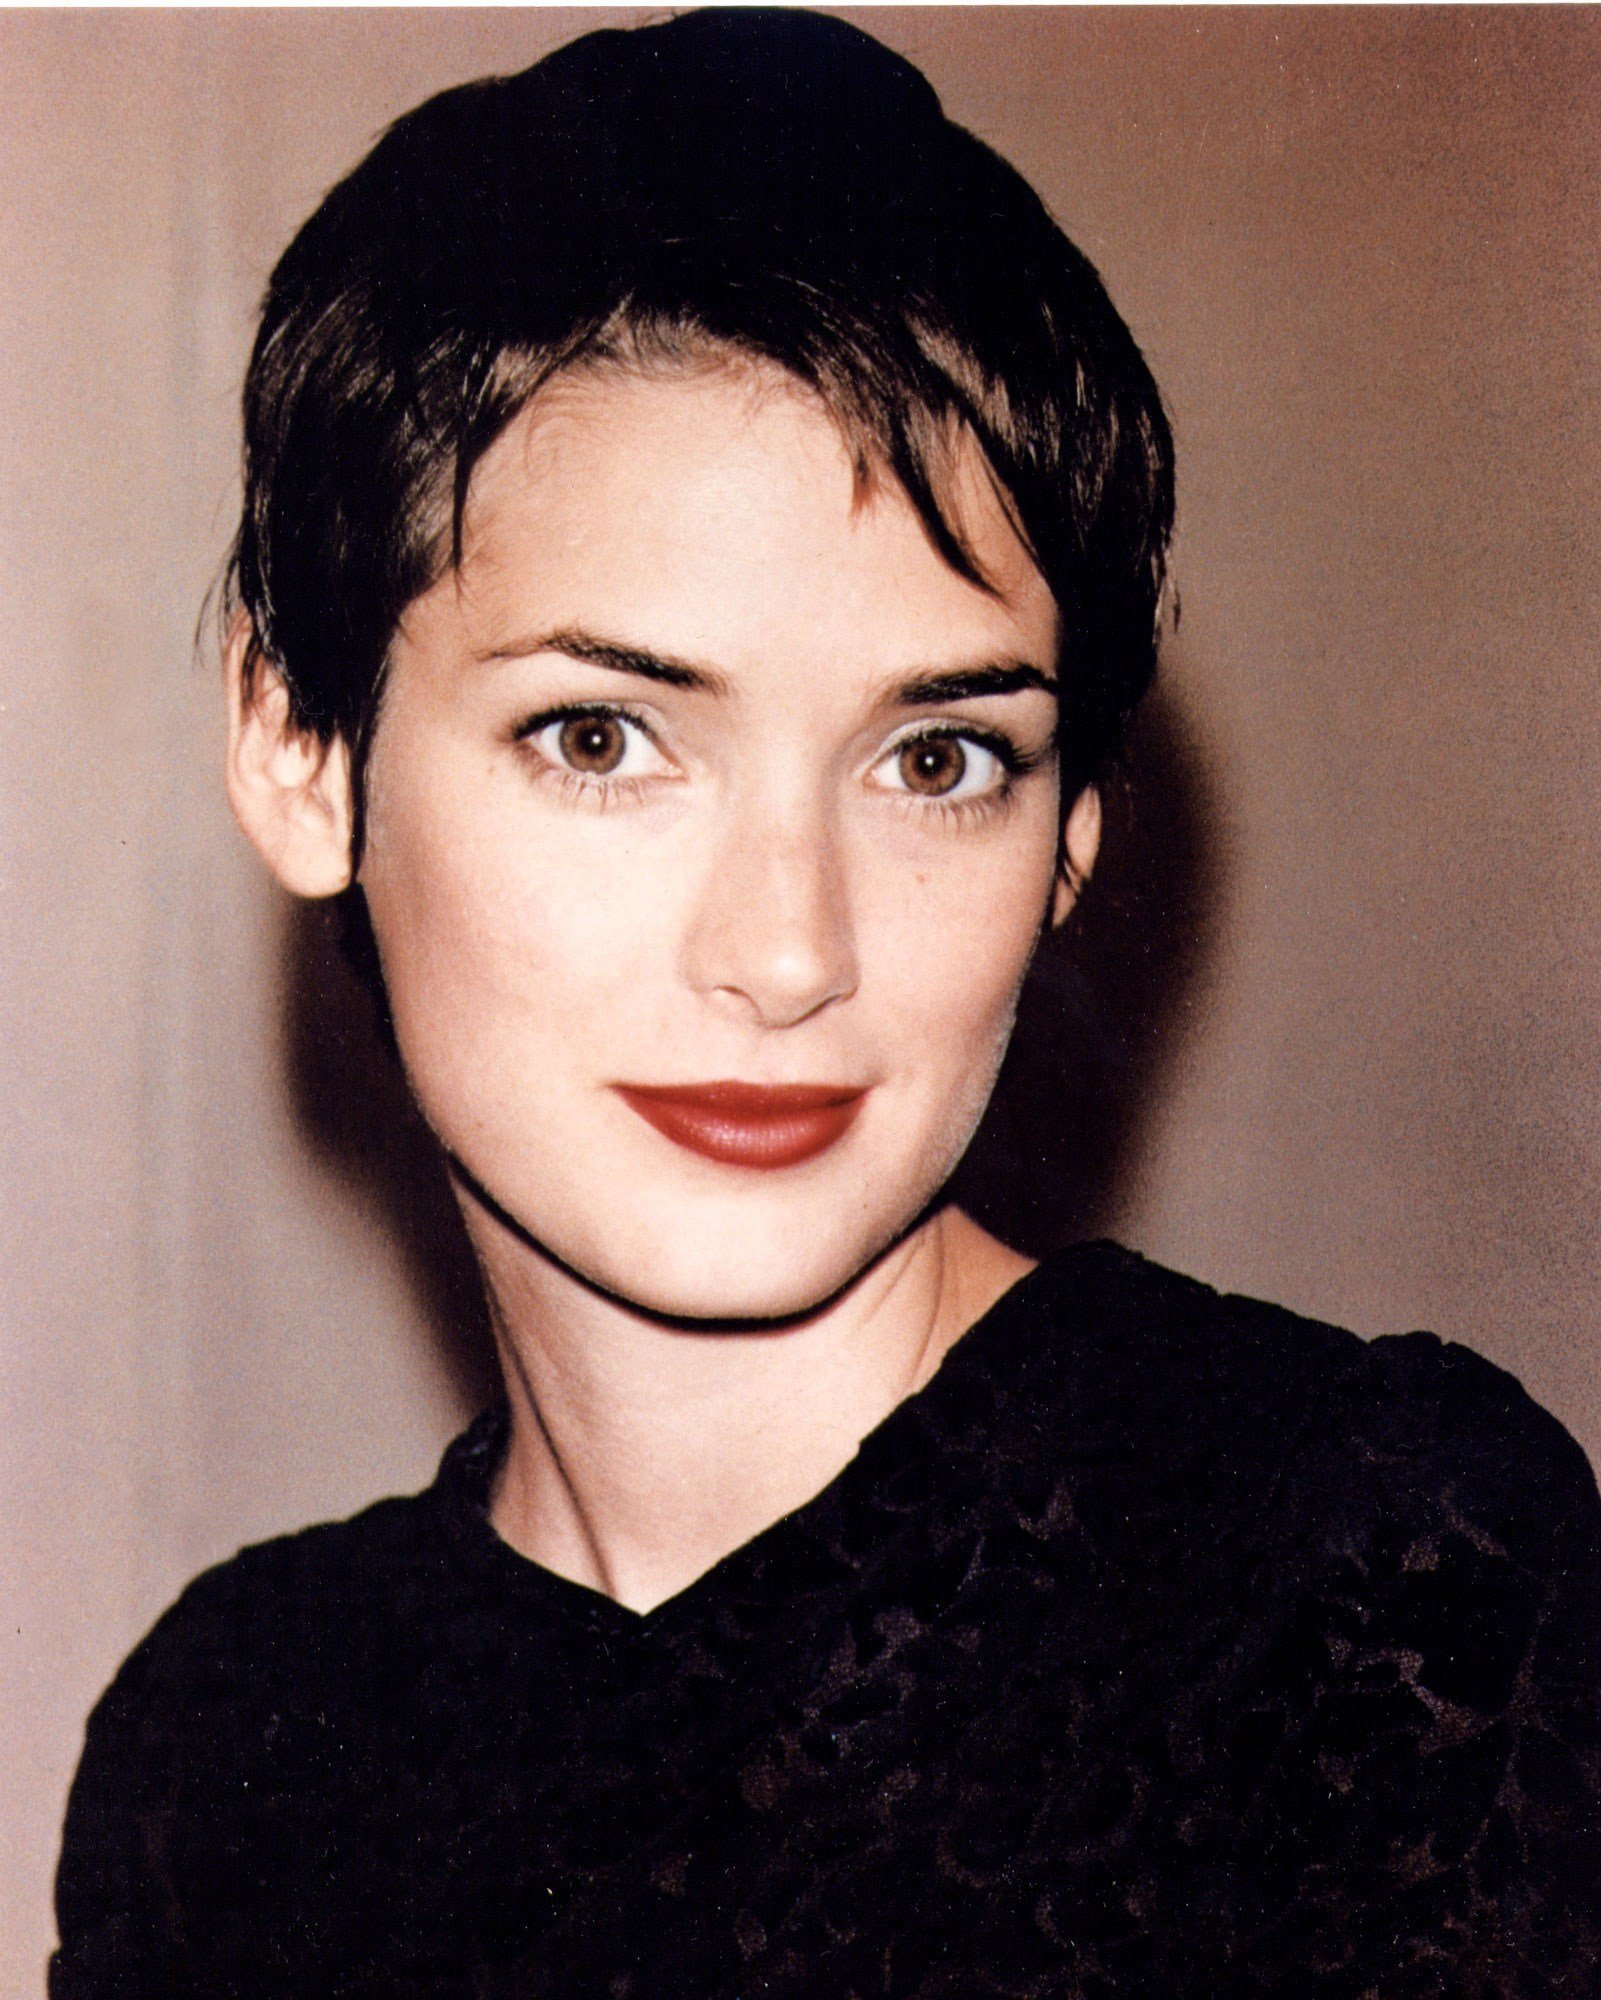 Rumors Say That She Ll Be Holly Short In Artemis Fowl Movie Do You Think She Would Suit The Part Winona Ryder Fanpop